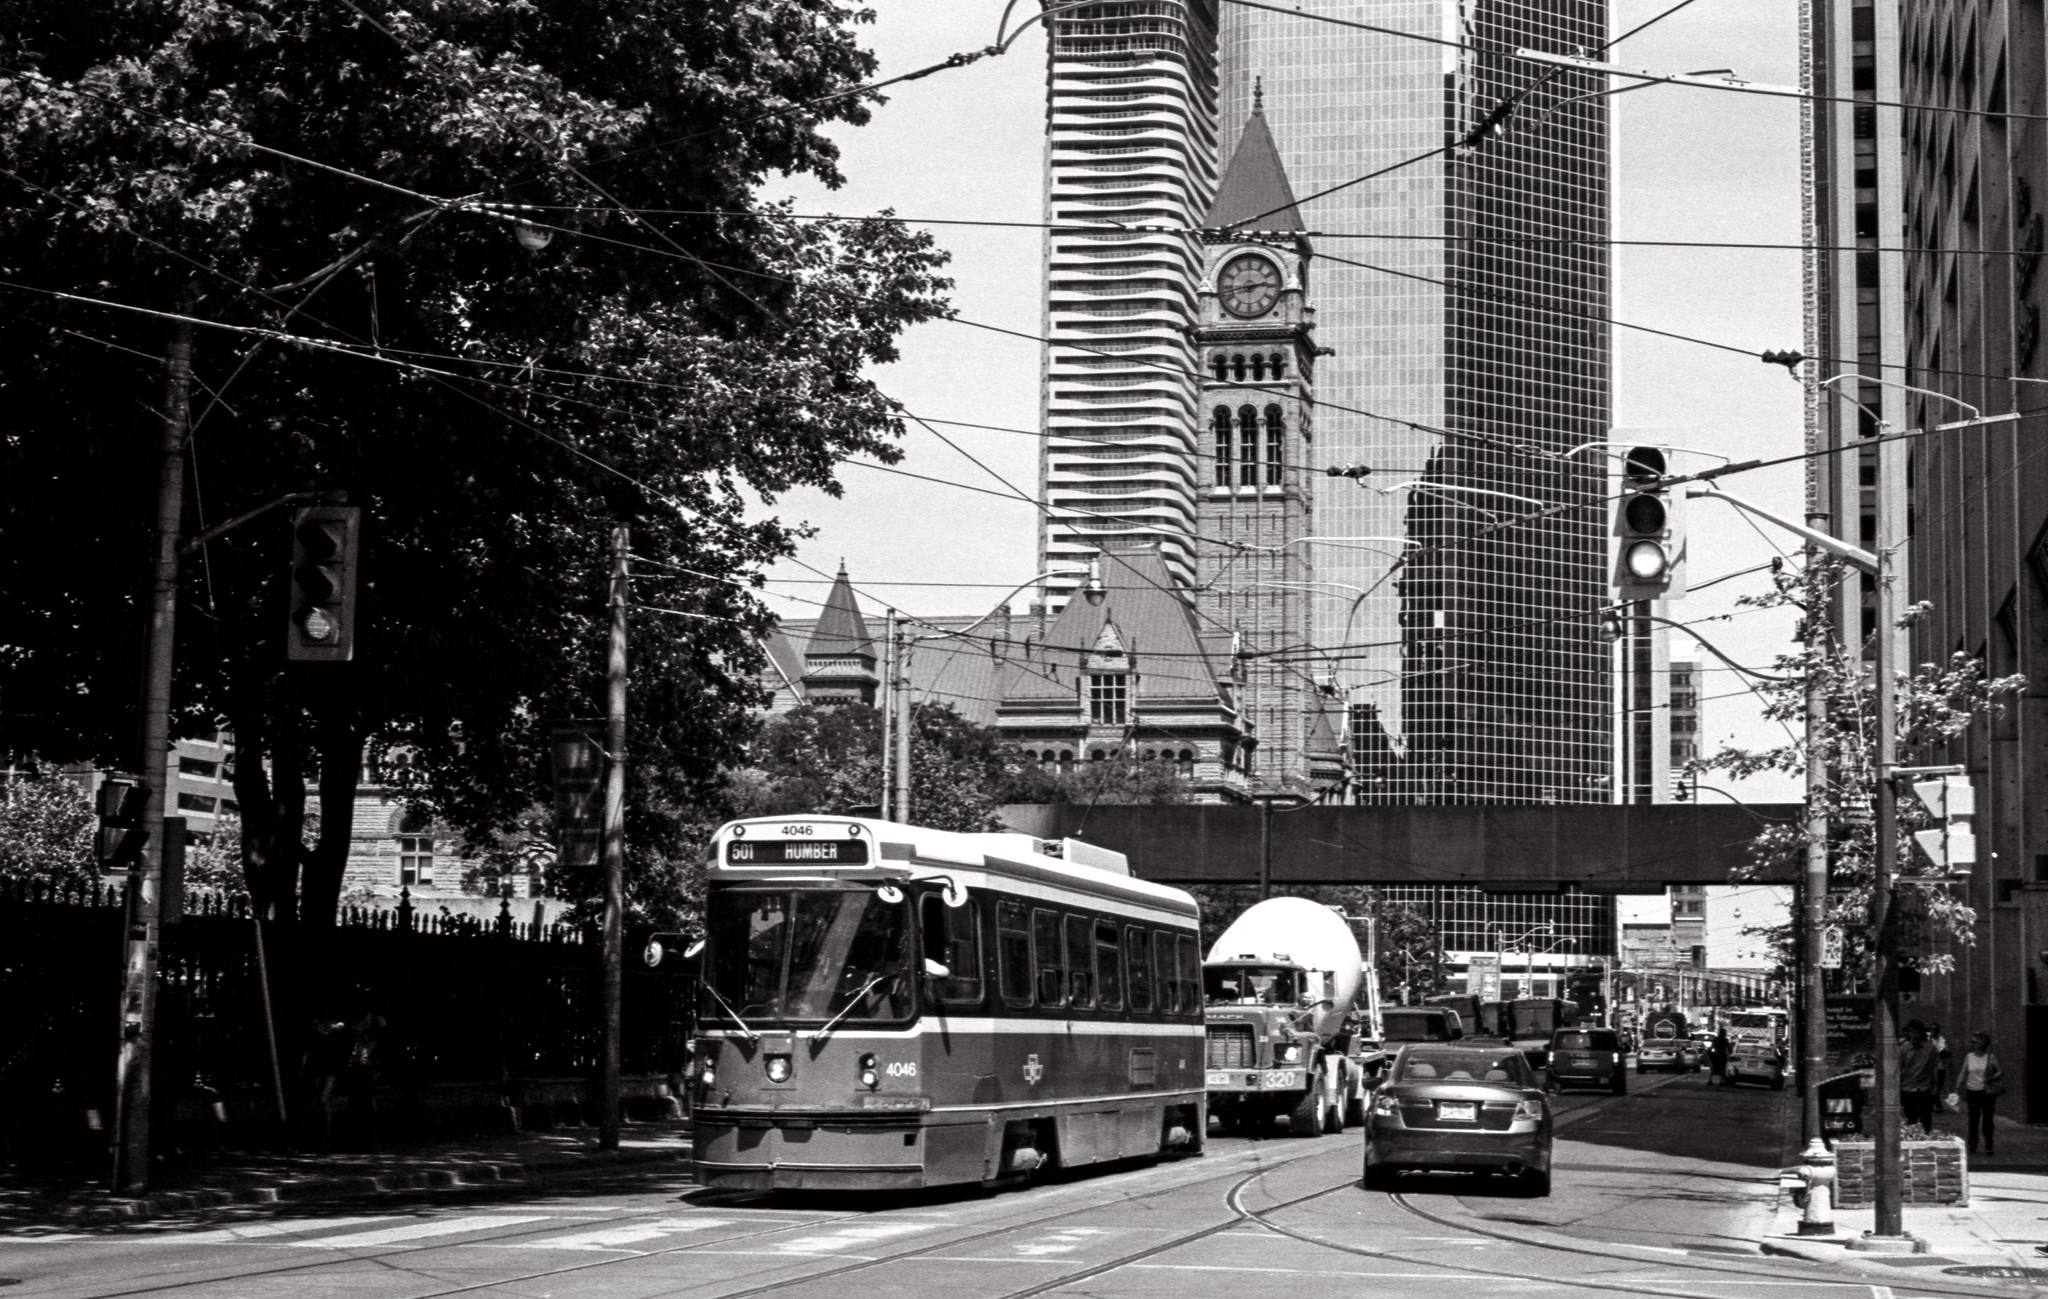 Queen and York, Pentax K2, SMC Pentax M 50 f1.4 lens, Kodak Tri-X 400